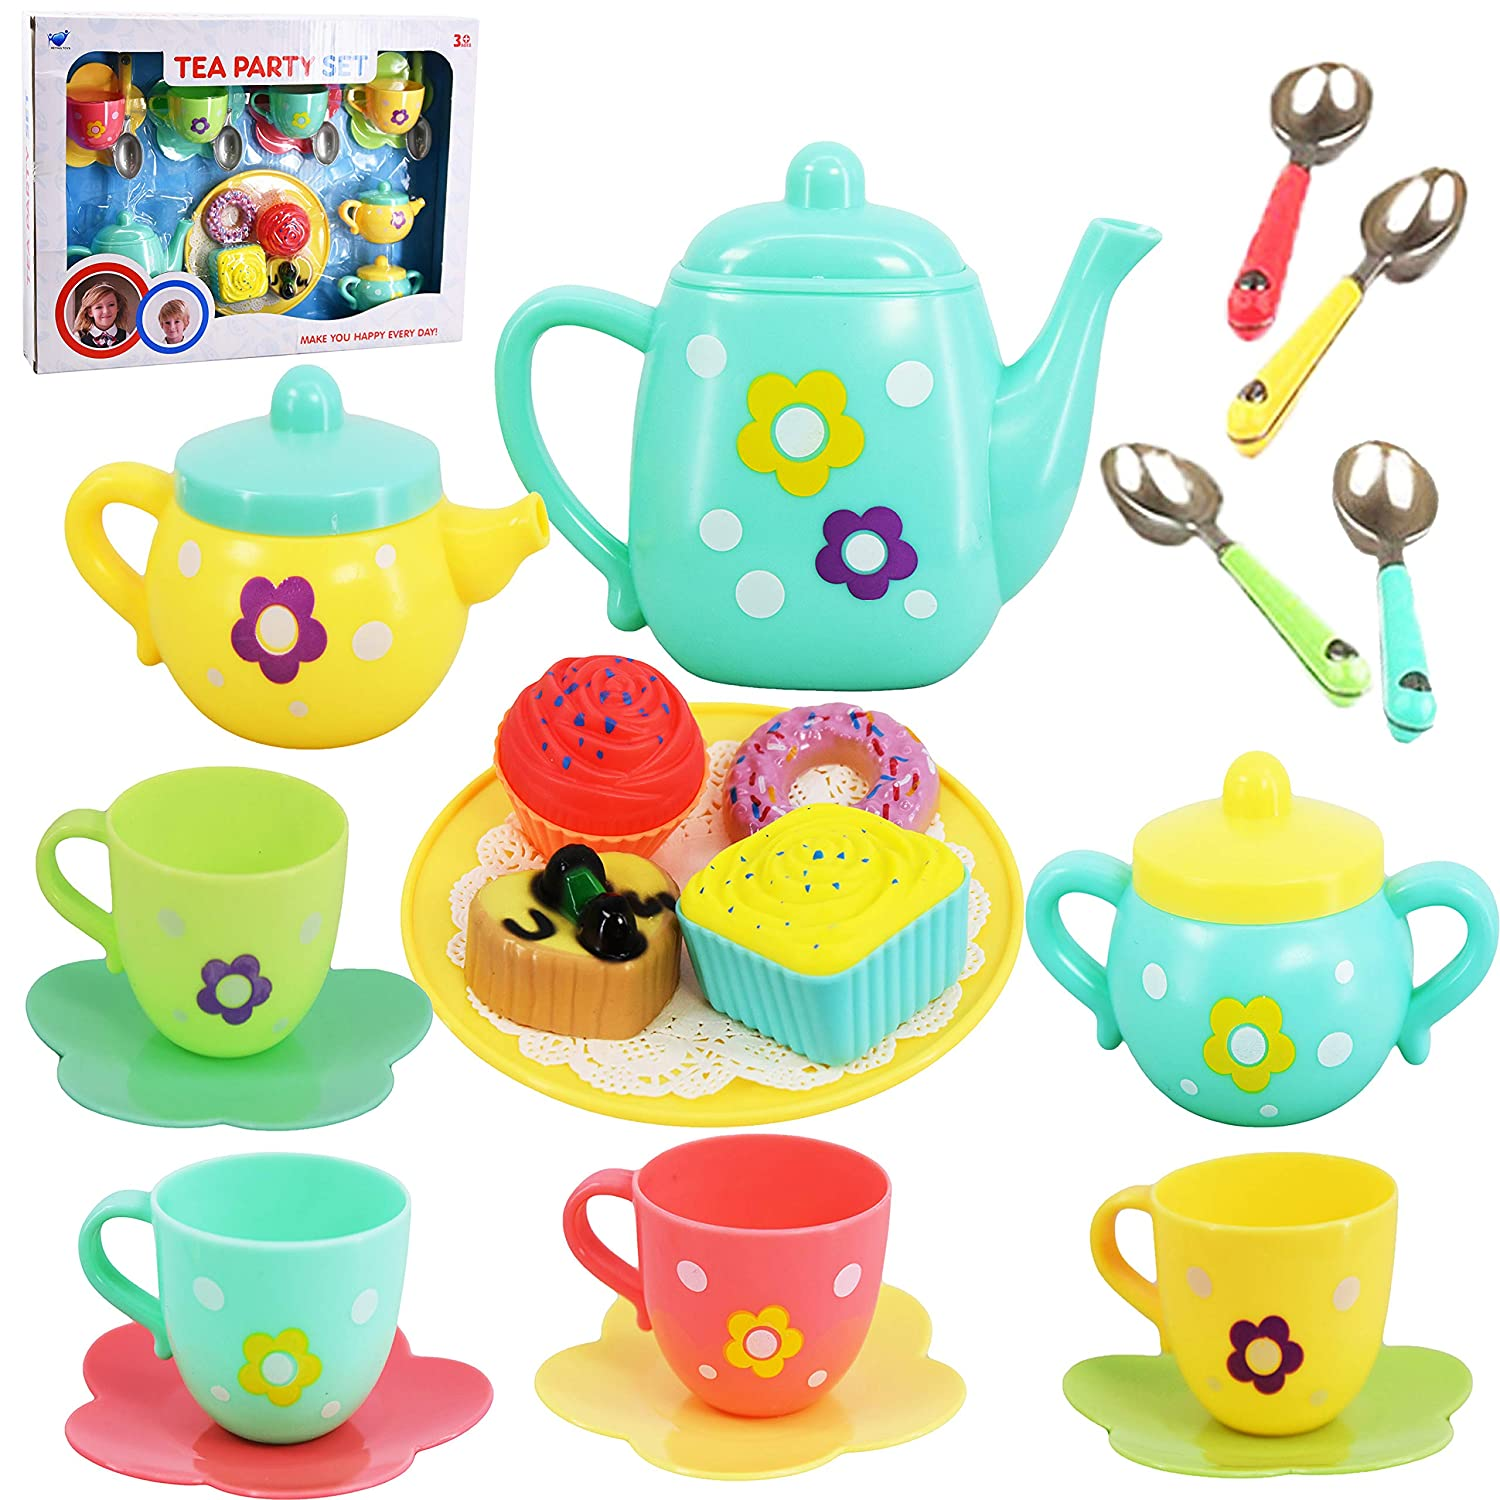 20 Piece Kids Pretty Flower Tea Party & Cake Play Set Teapot Role Pretend Toy The Magic Toy Shop